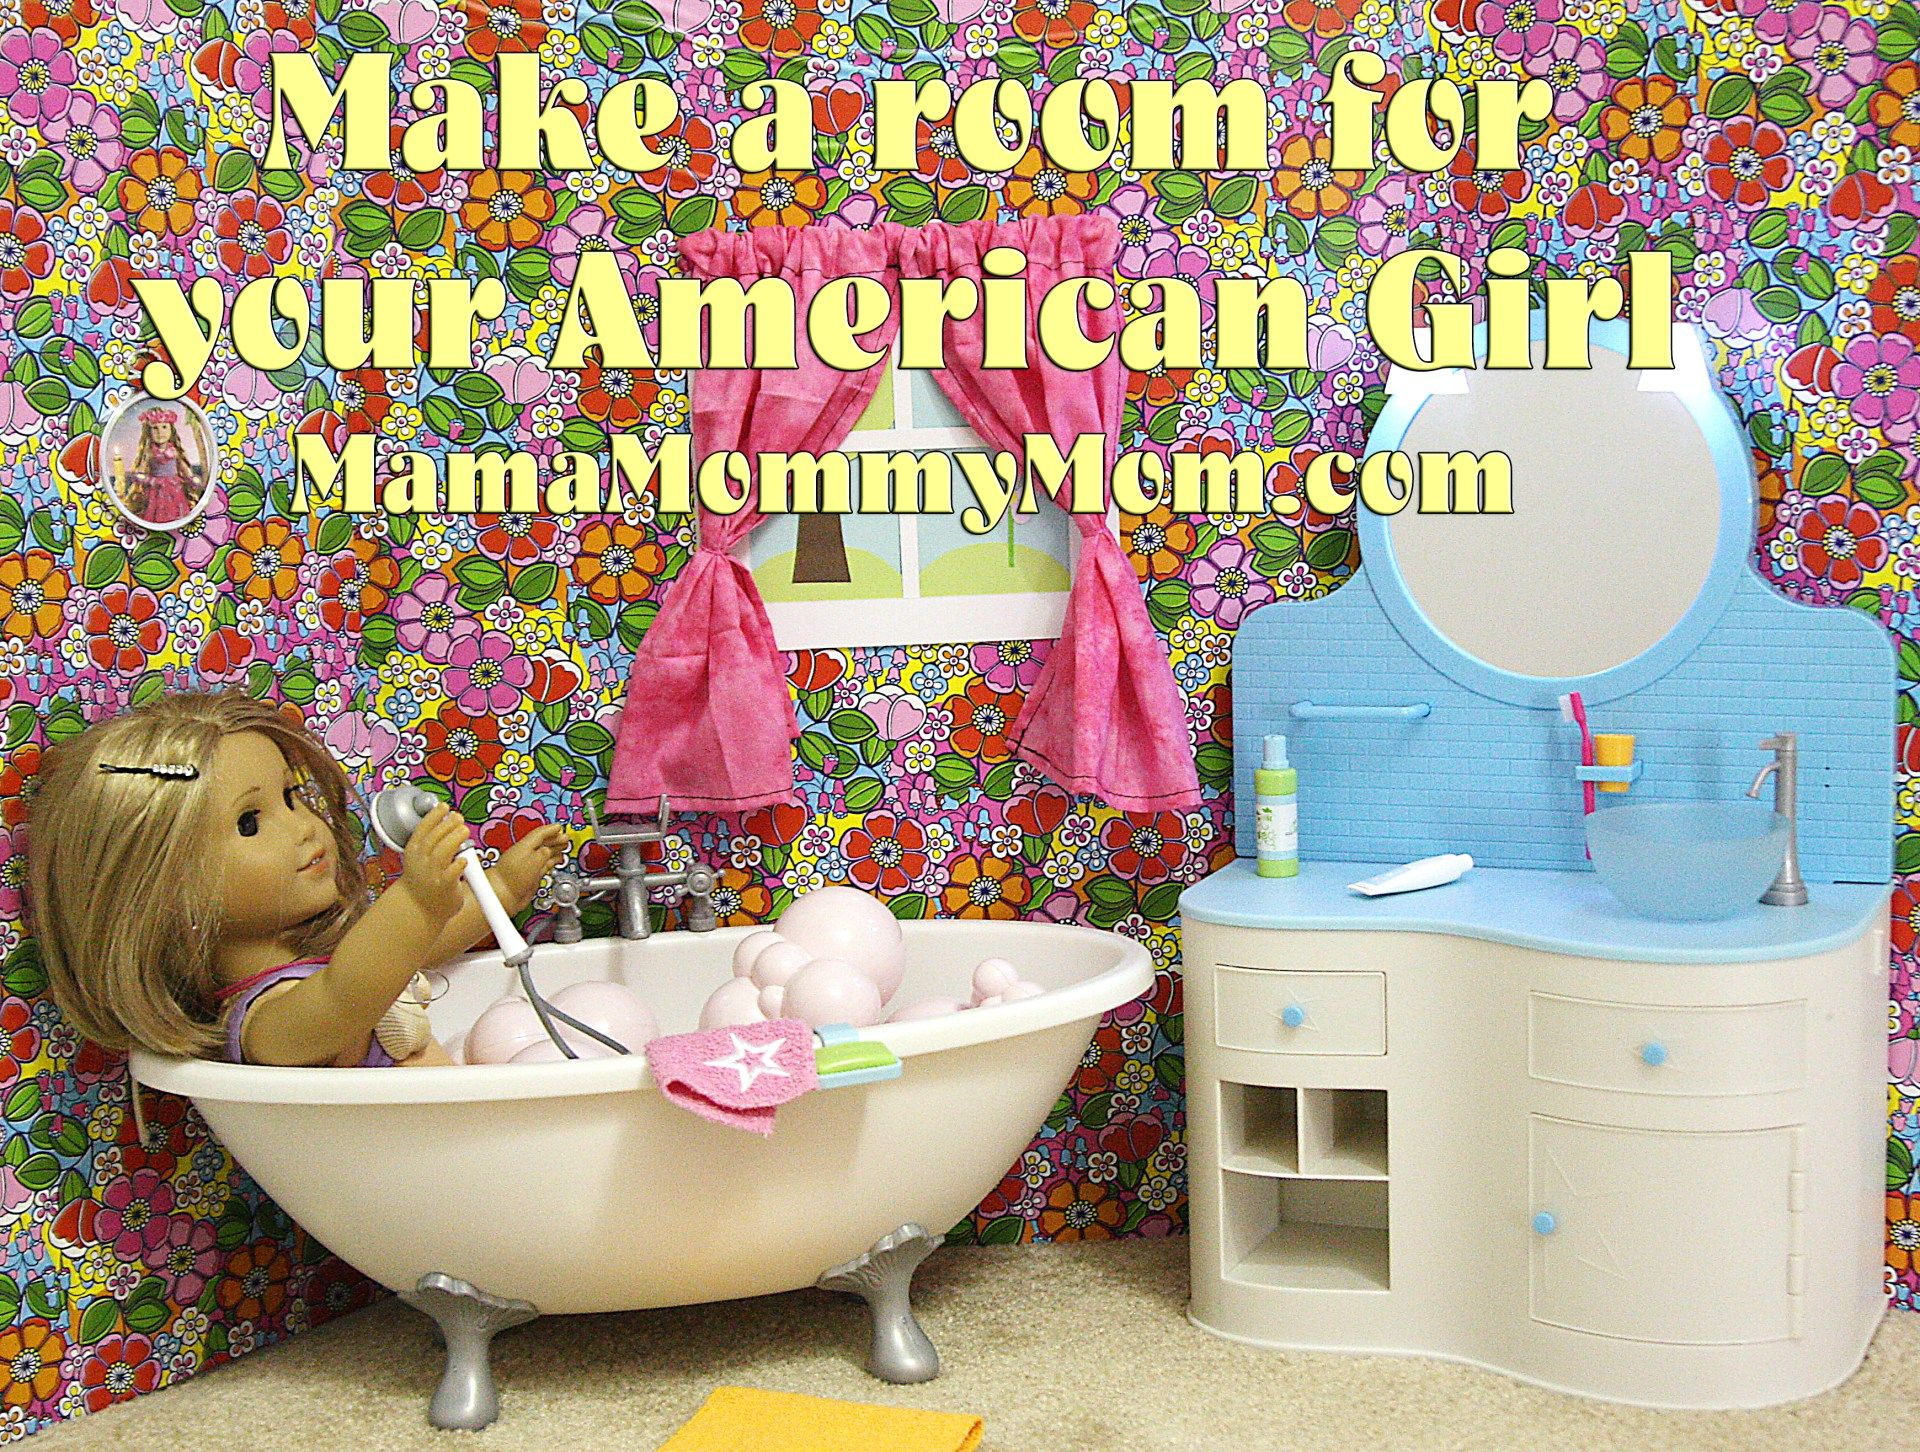 American Girl on the Cheap: Making a Room for Your Doll - #americangirlhouse